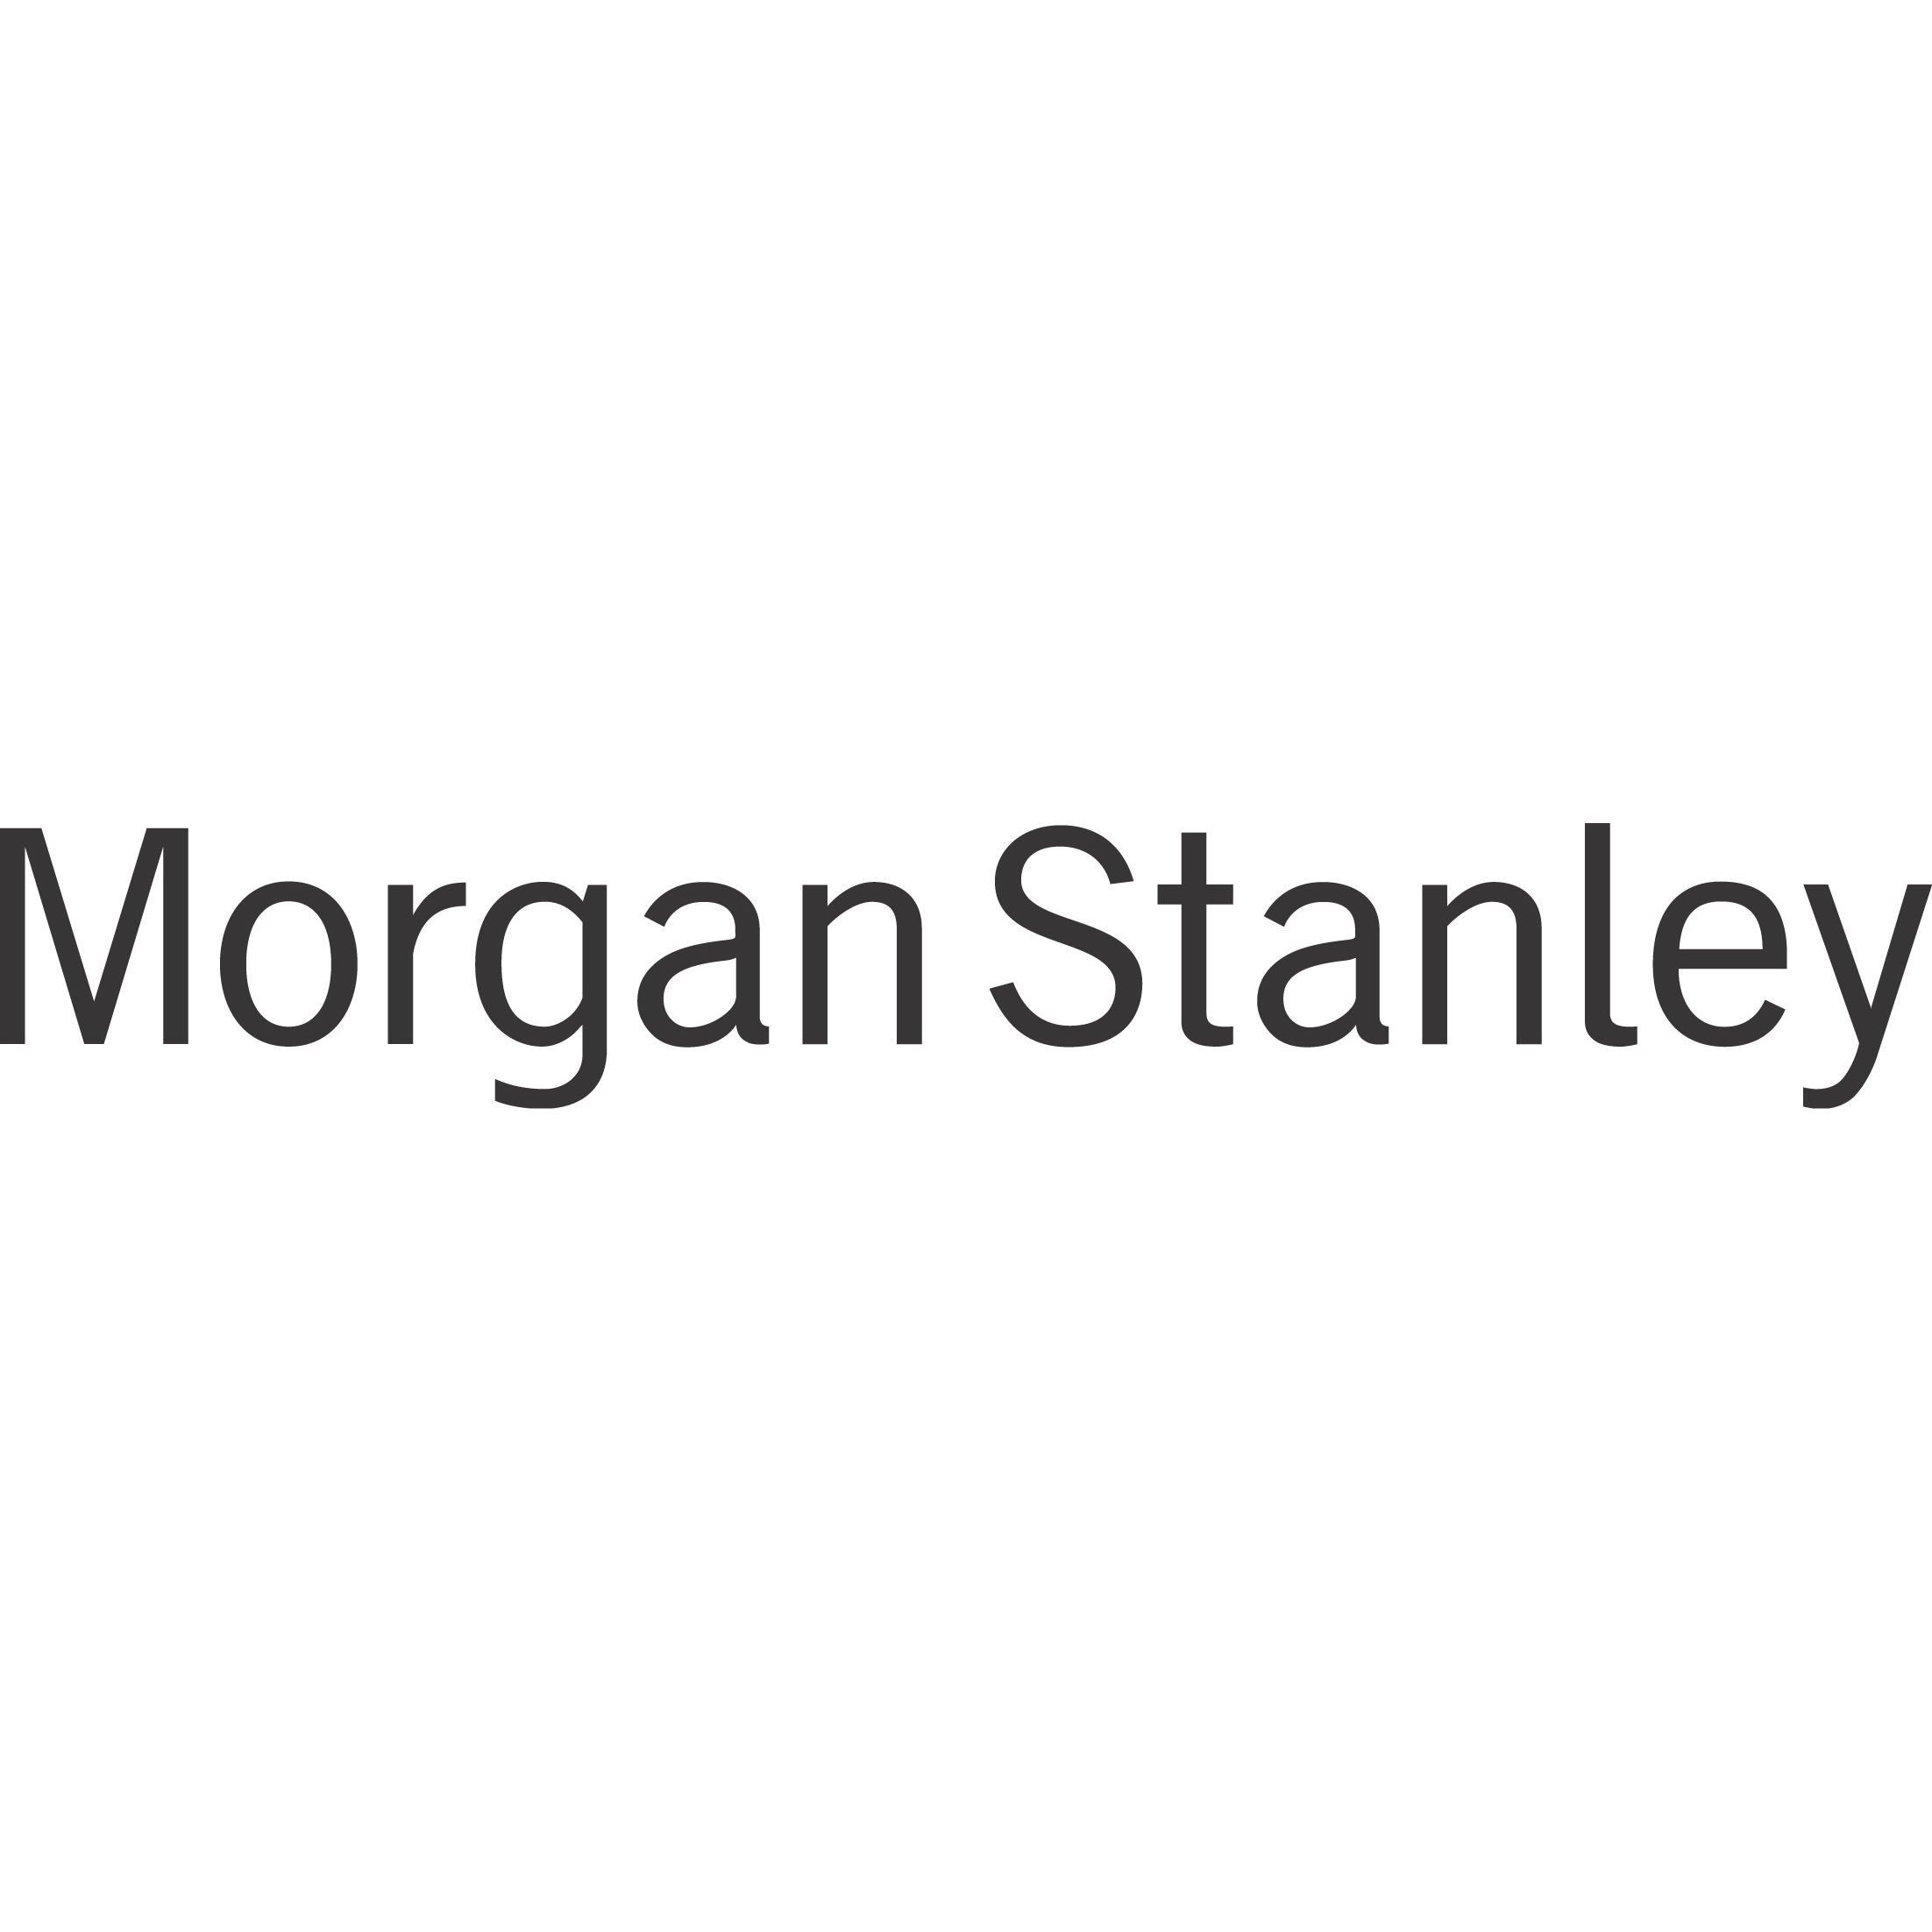 Morgan Stanley | Financial Advisor in San Rafael,California